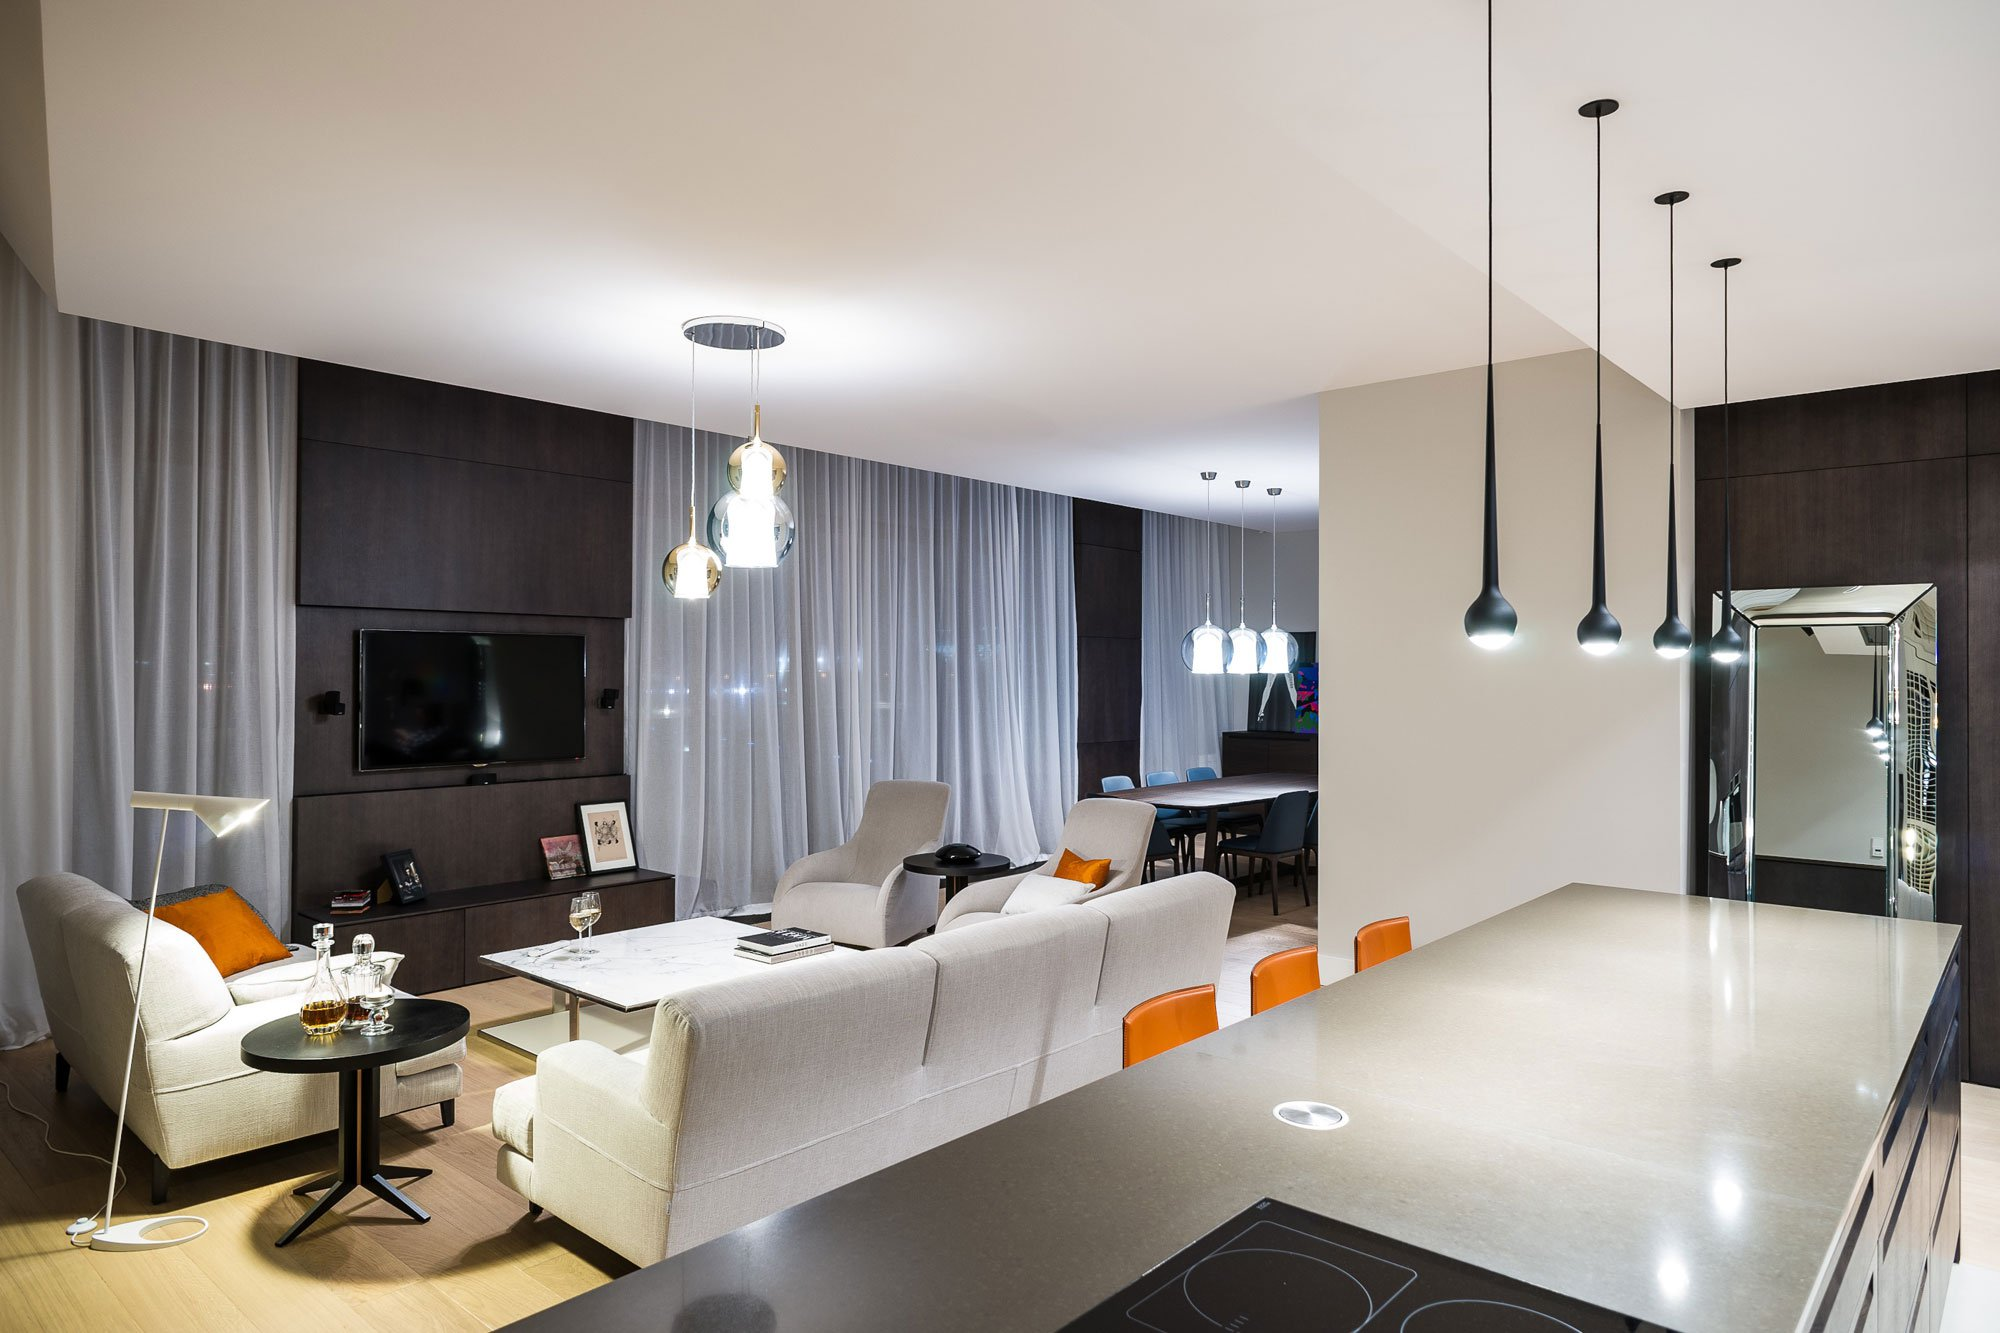 Apartment in Nowe Powiśle by Republika Architektury